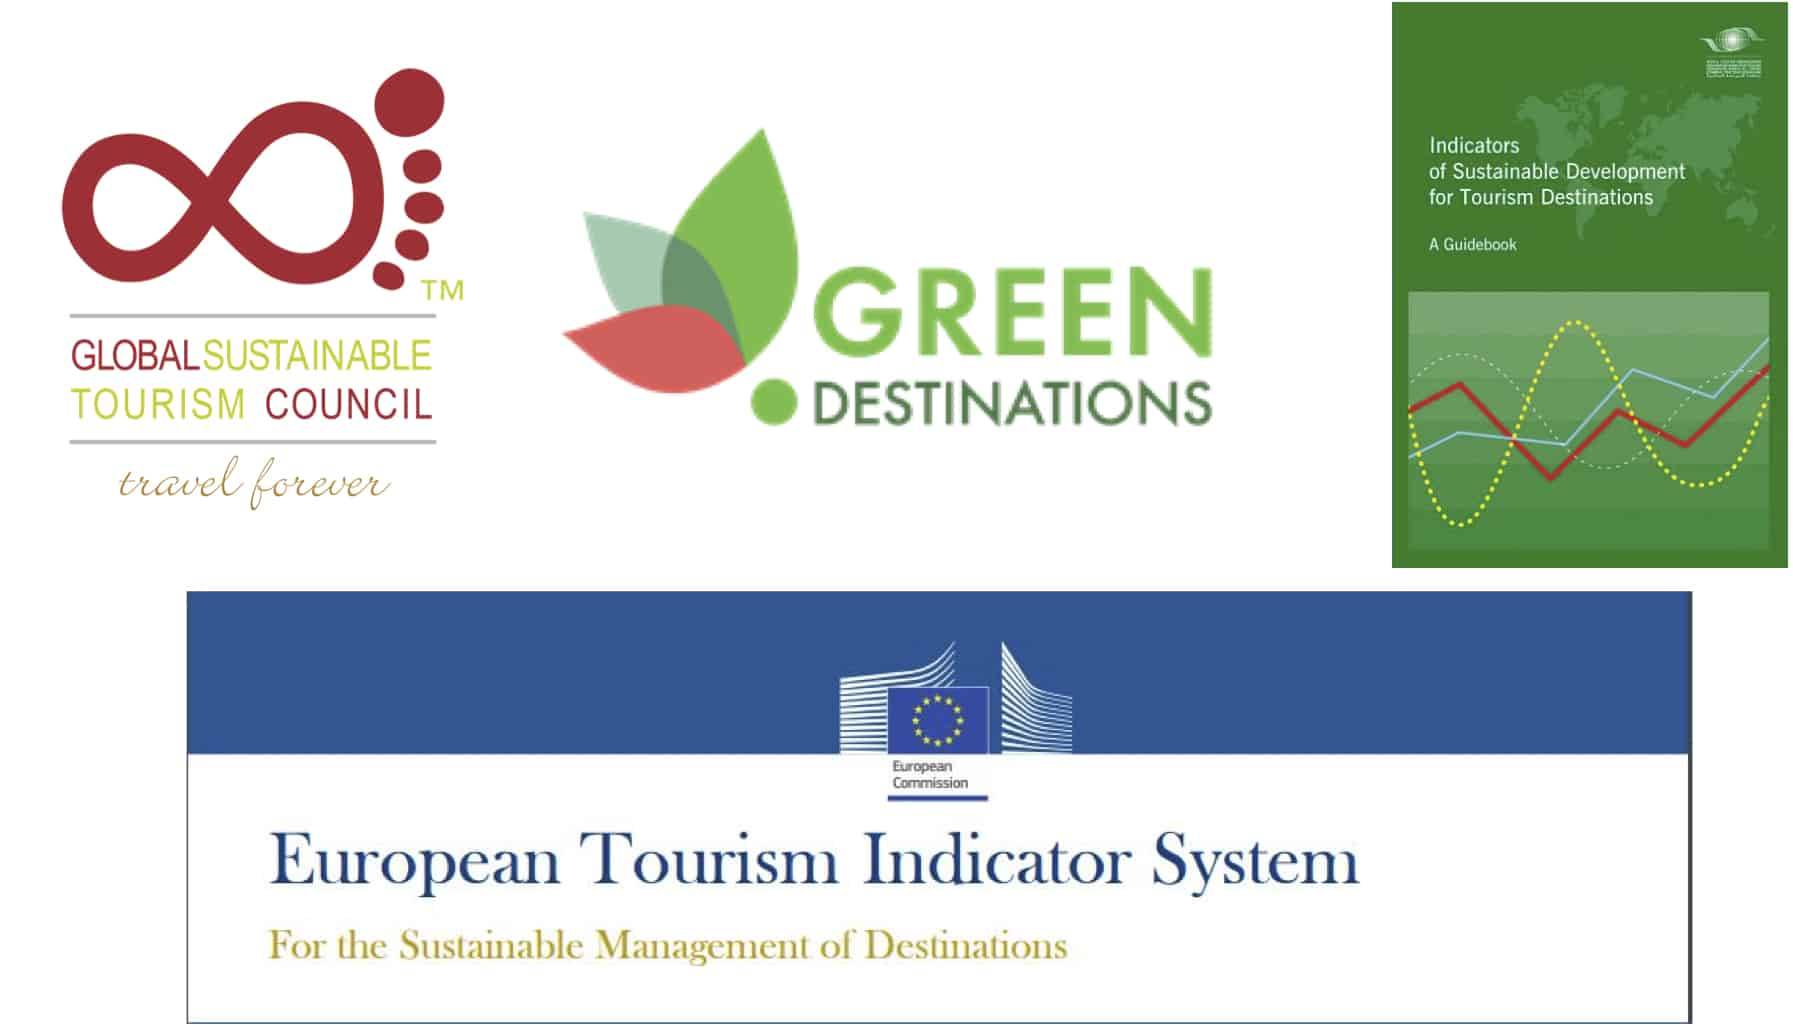 Tourism Destinations What To Do About Overcrowded Destinations Destination